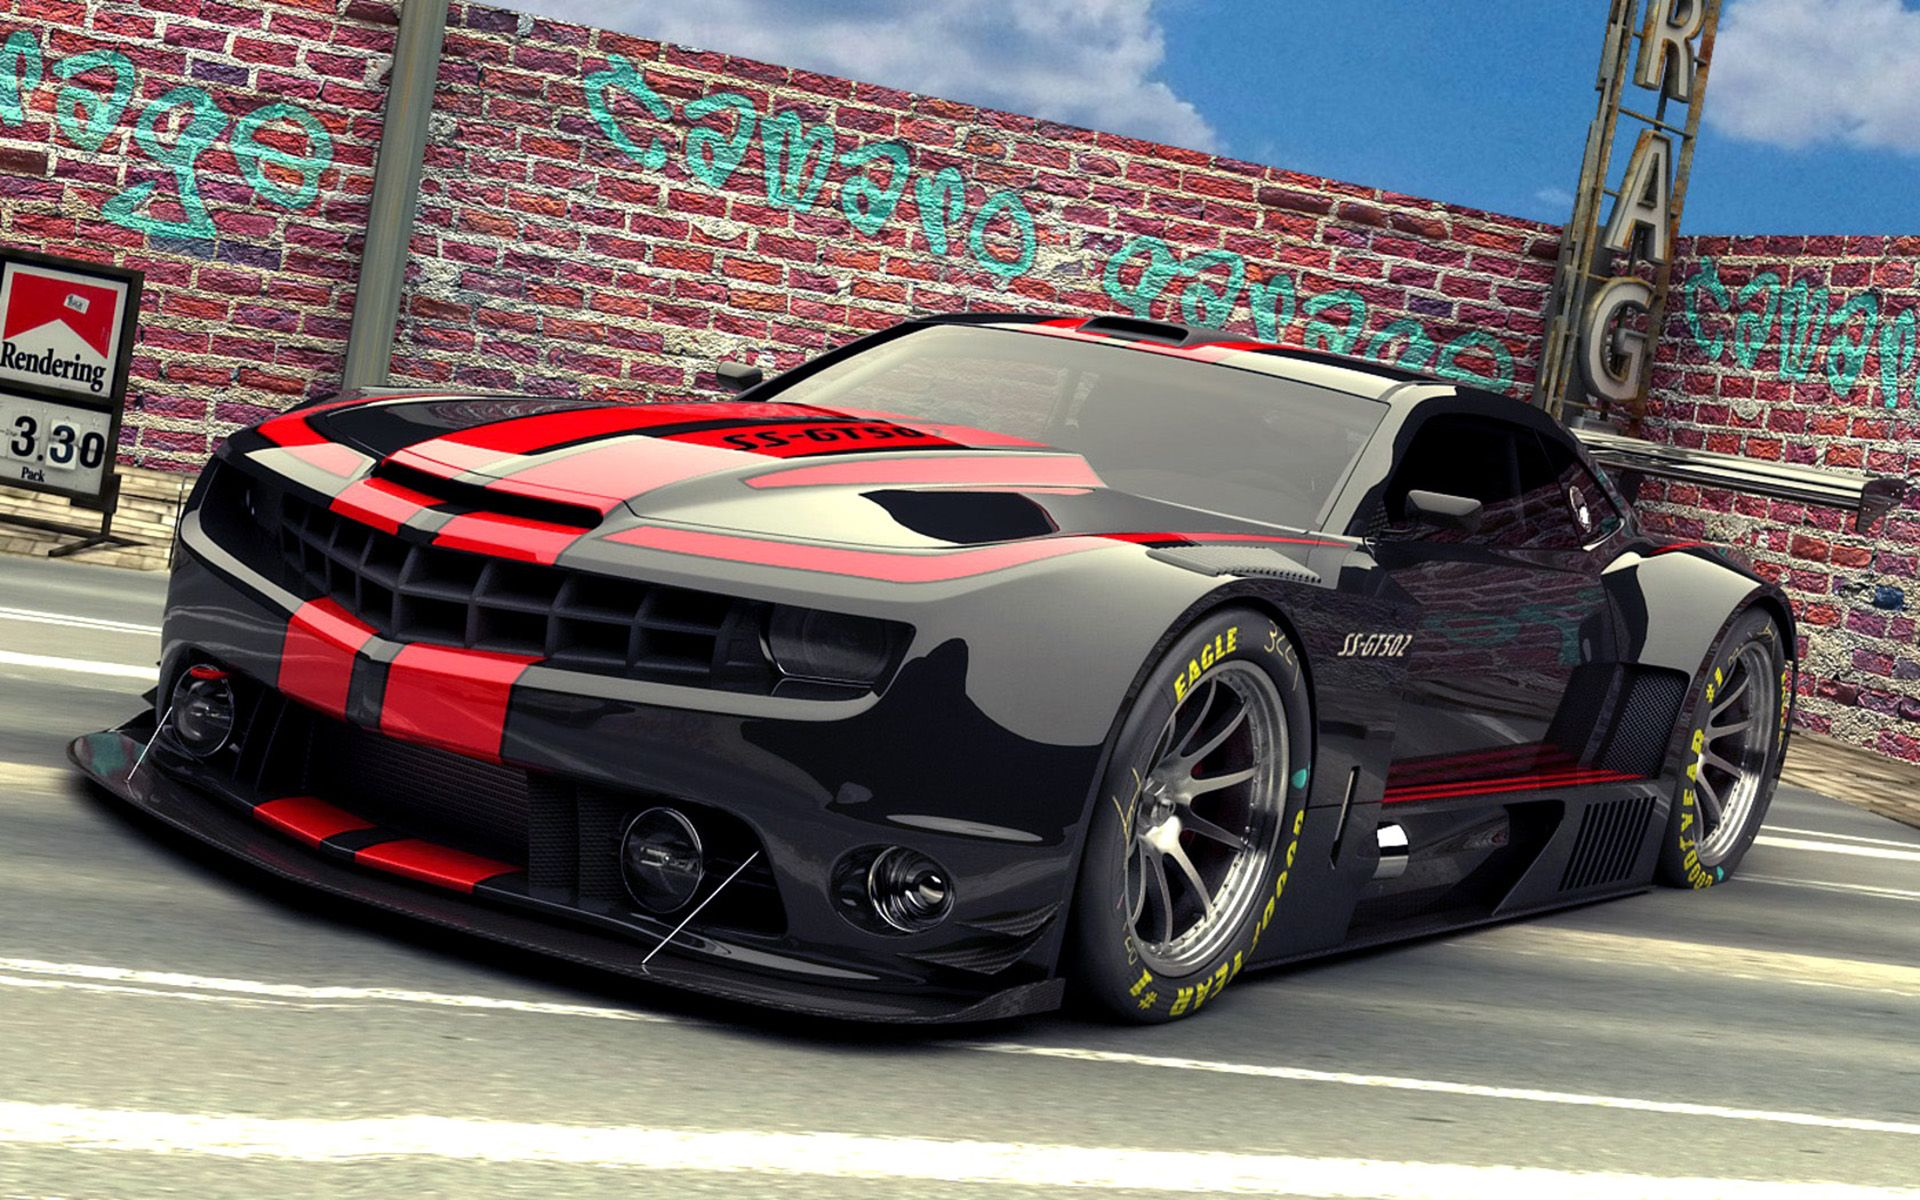 Chevy camaro ss 2013 wallpaper 2013 black custom camaro ss gt 502 car picture hd wallpaper auto maybe this or maybe that pinterest camaro ss chevy